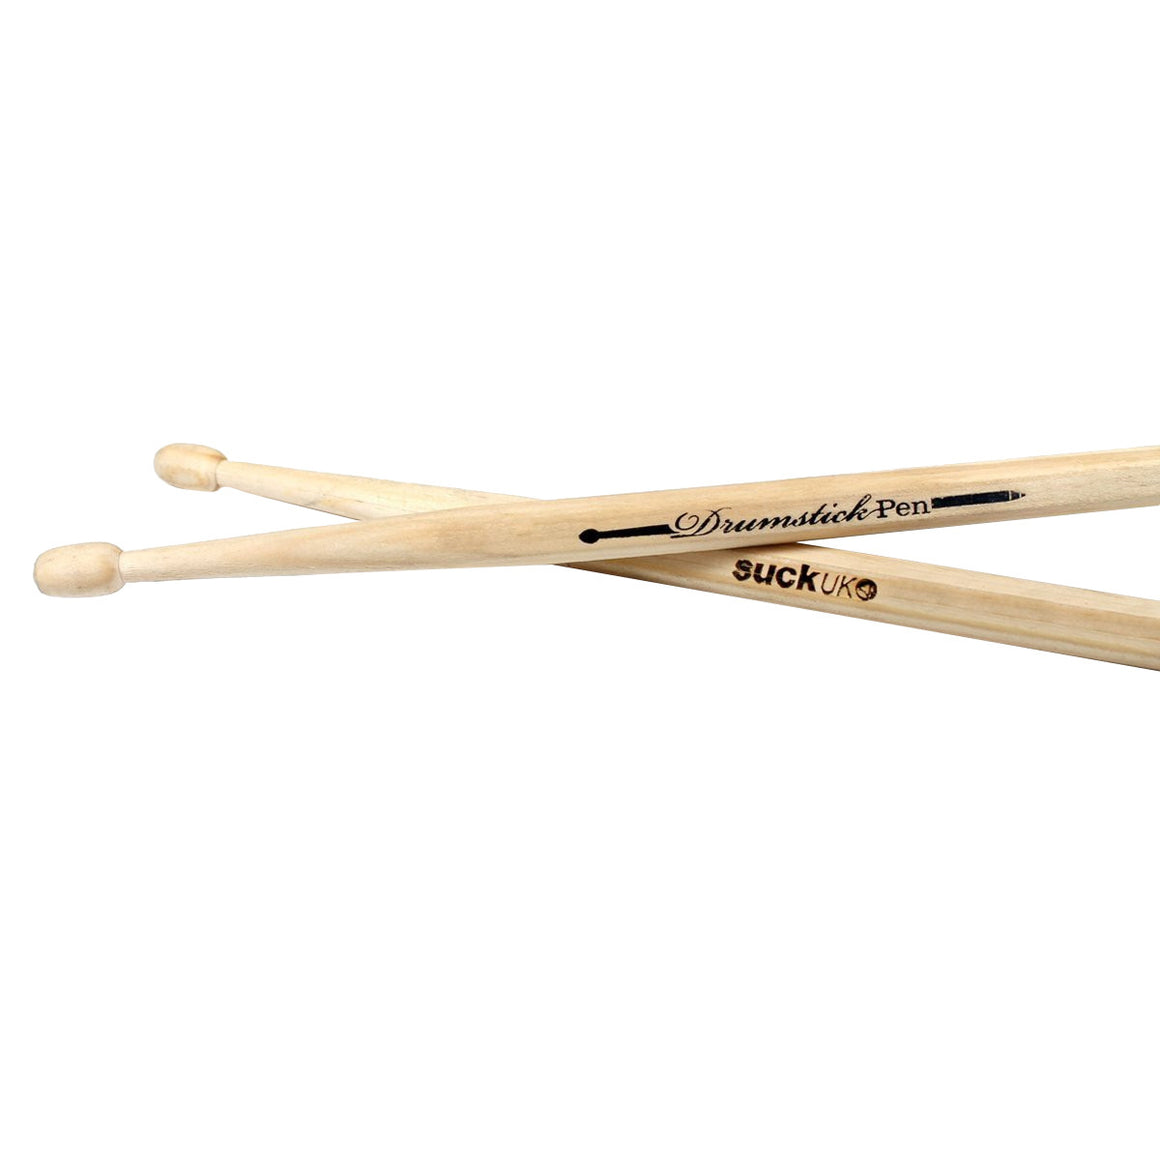 Drumstick Pen - Black